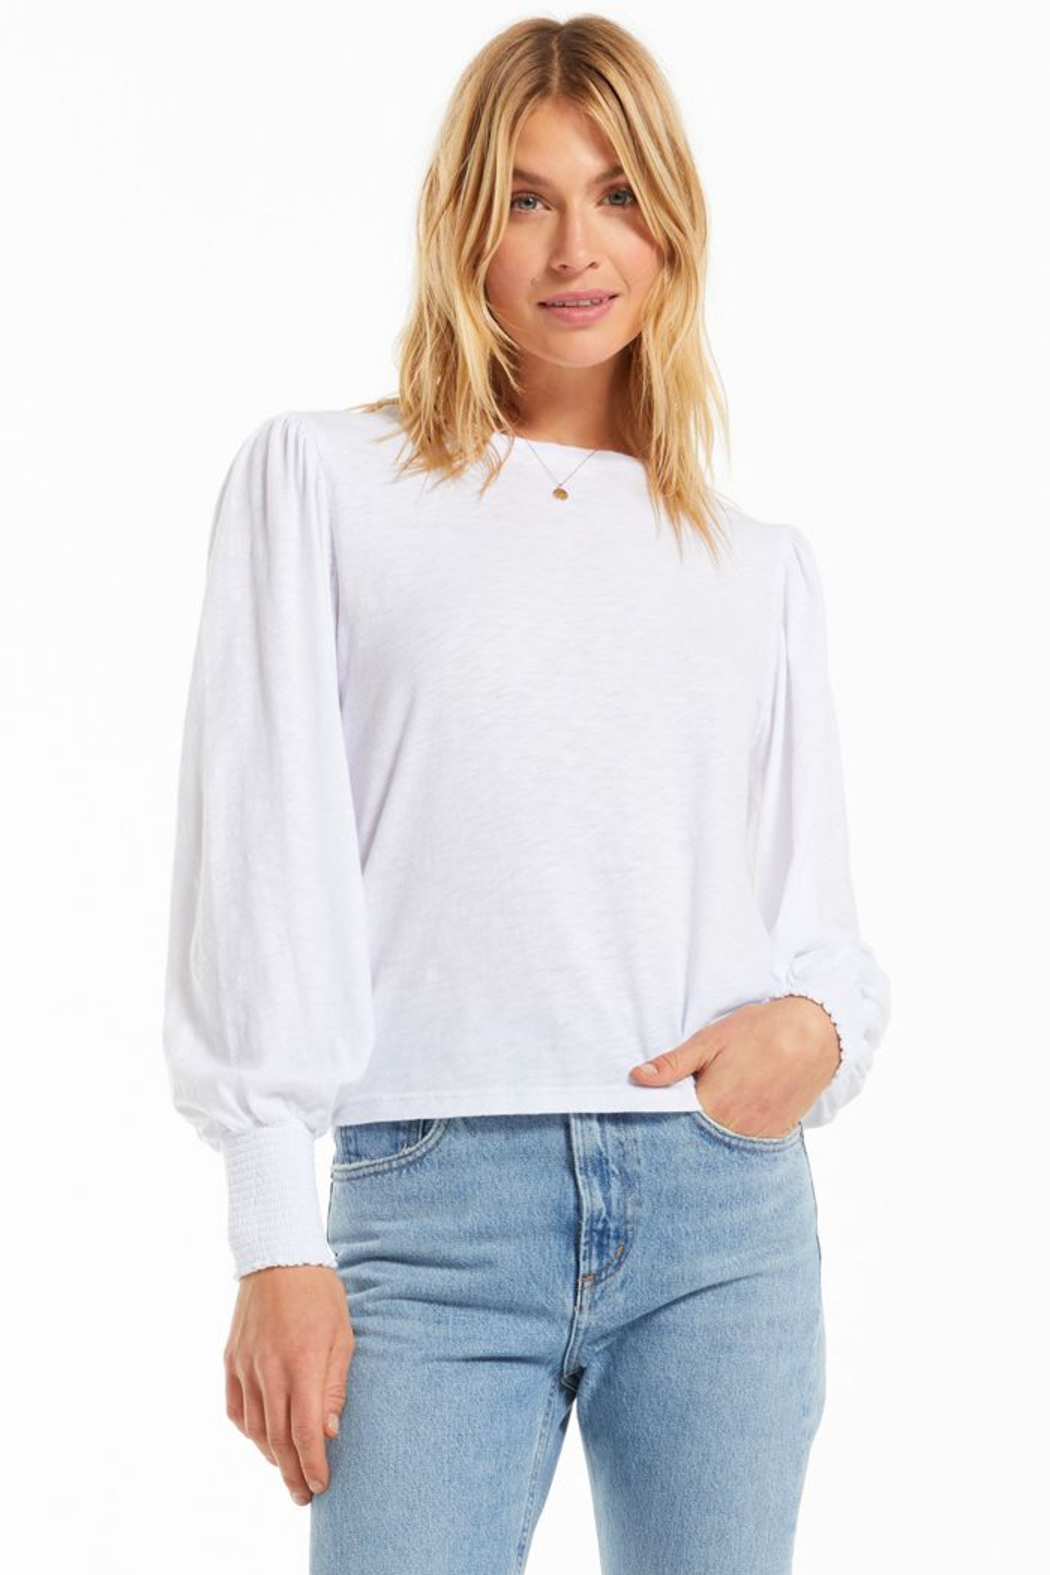 z supply Emery Long Sleeve Top - Front Cropped Image